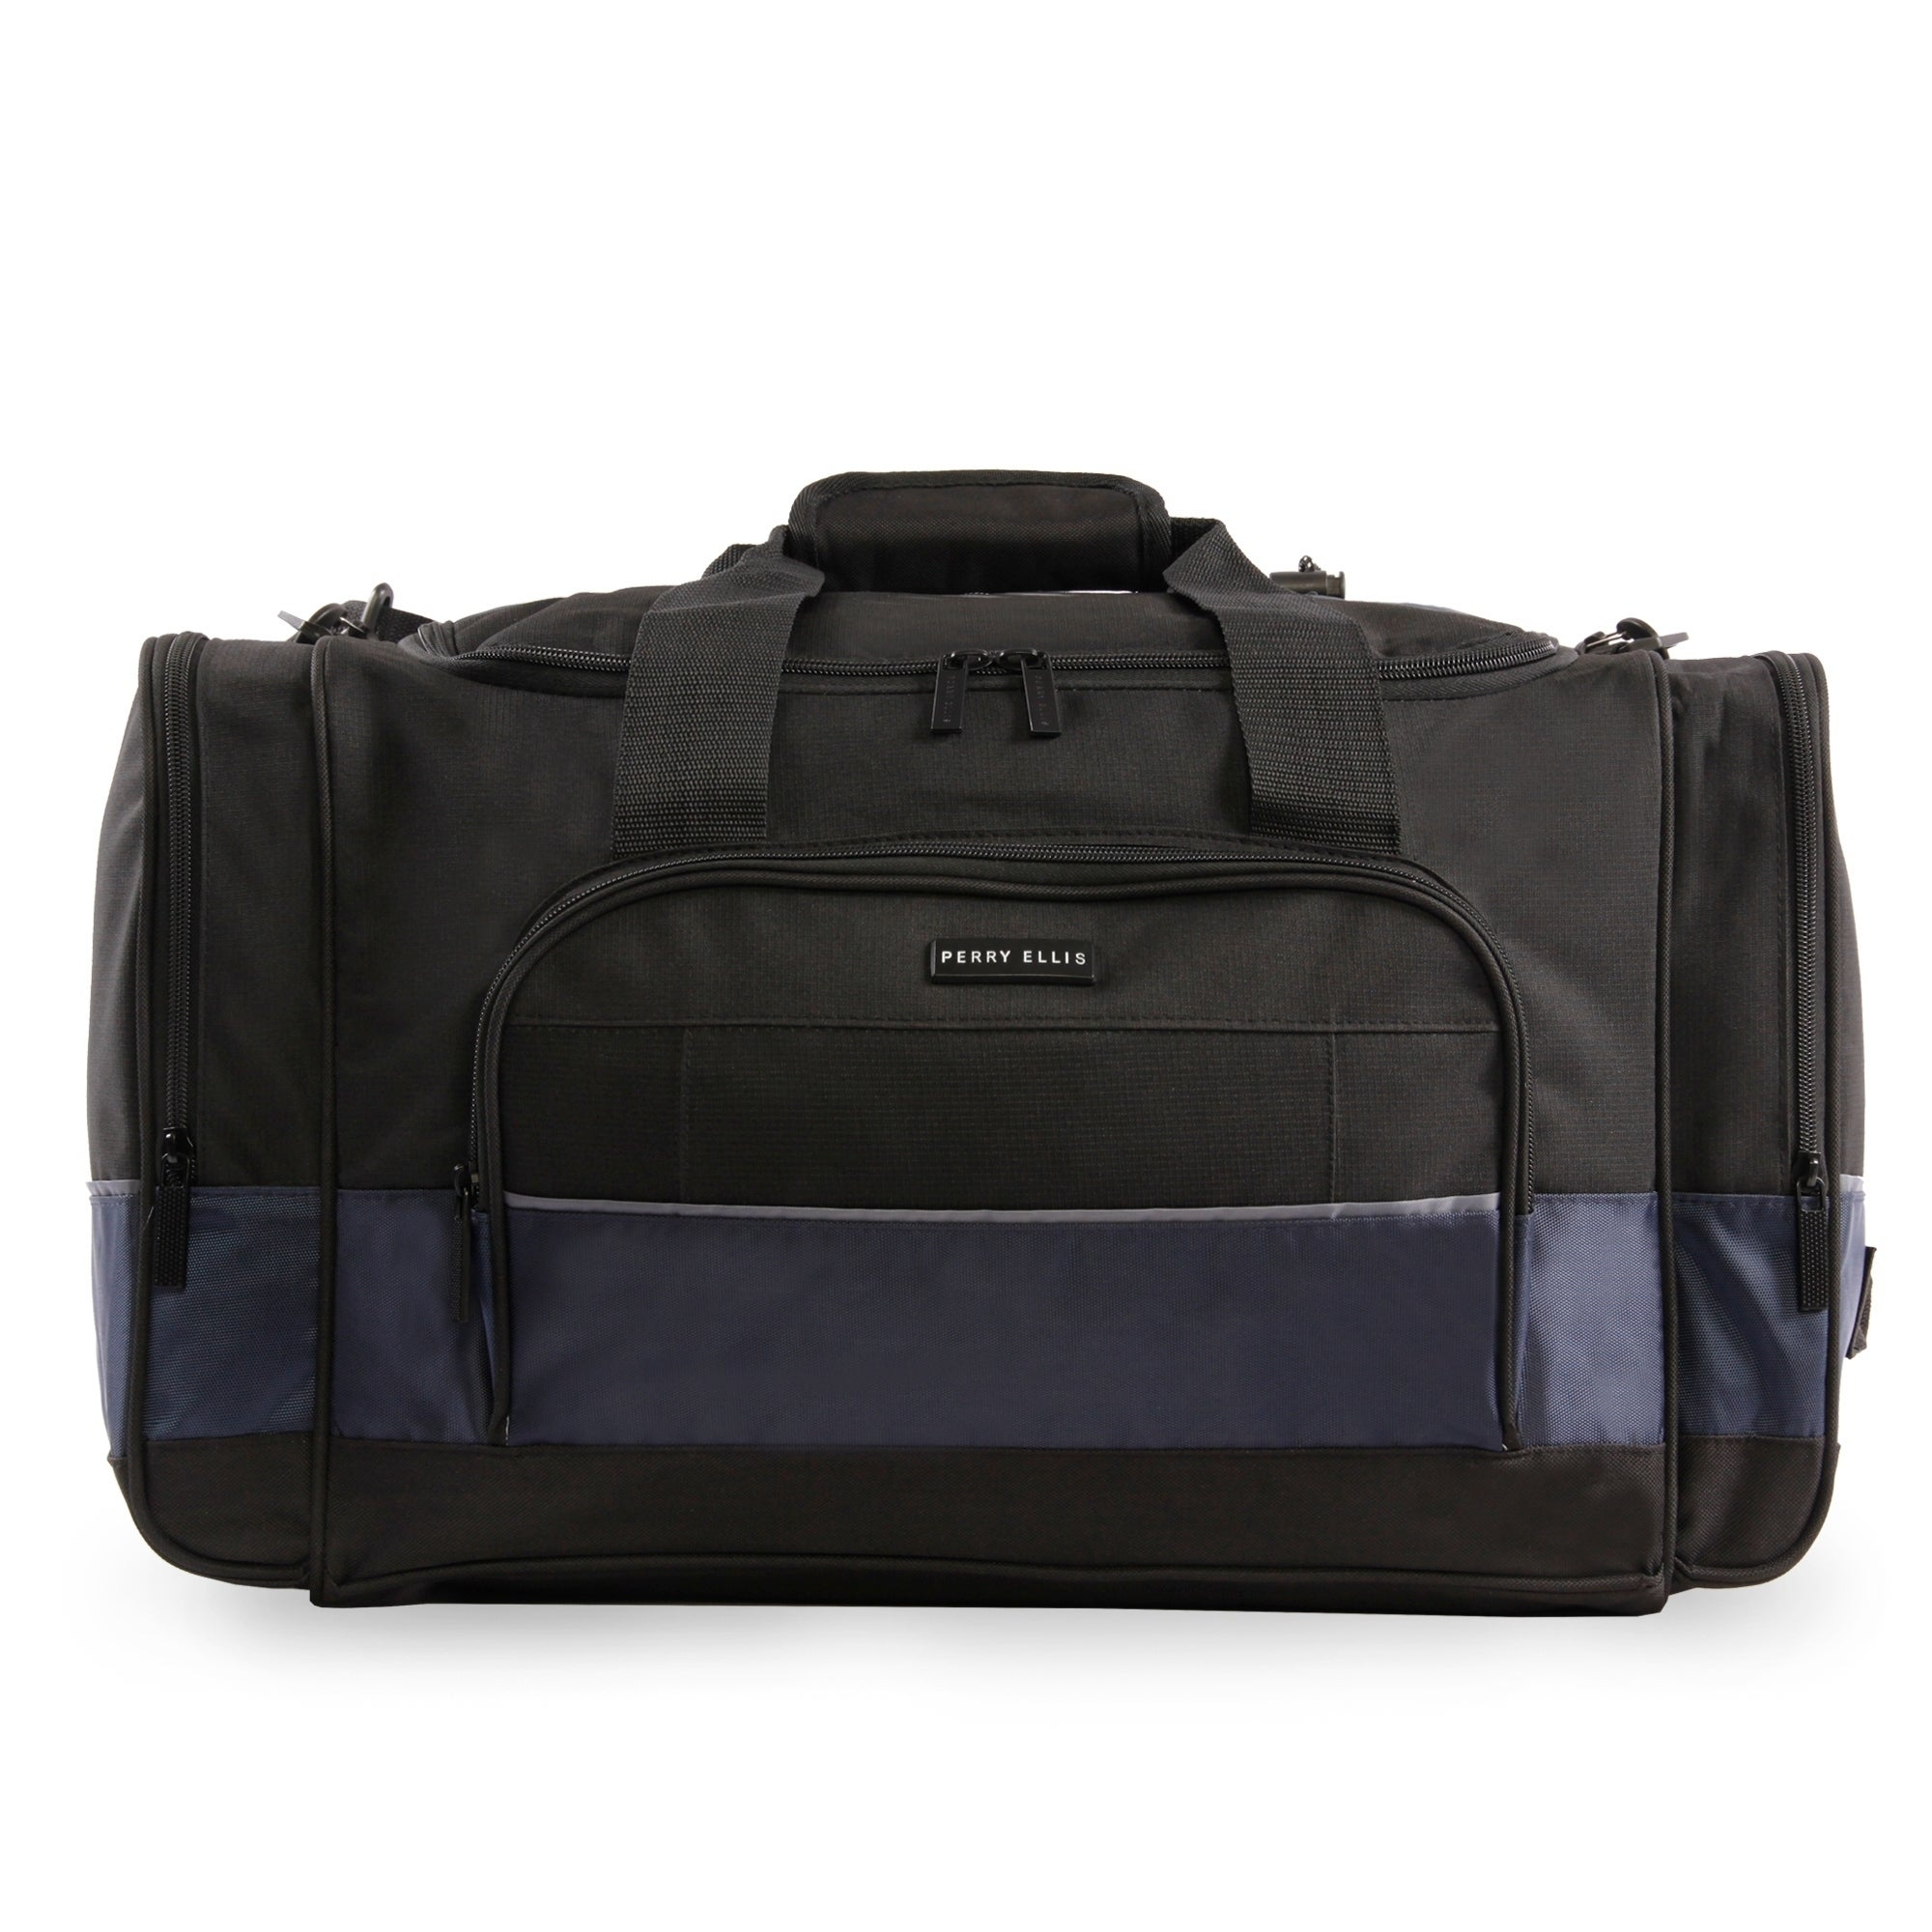 Perry Ellis 22 Inch Duffel Bag Free Shipping On Orders Over 45 20761525